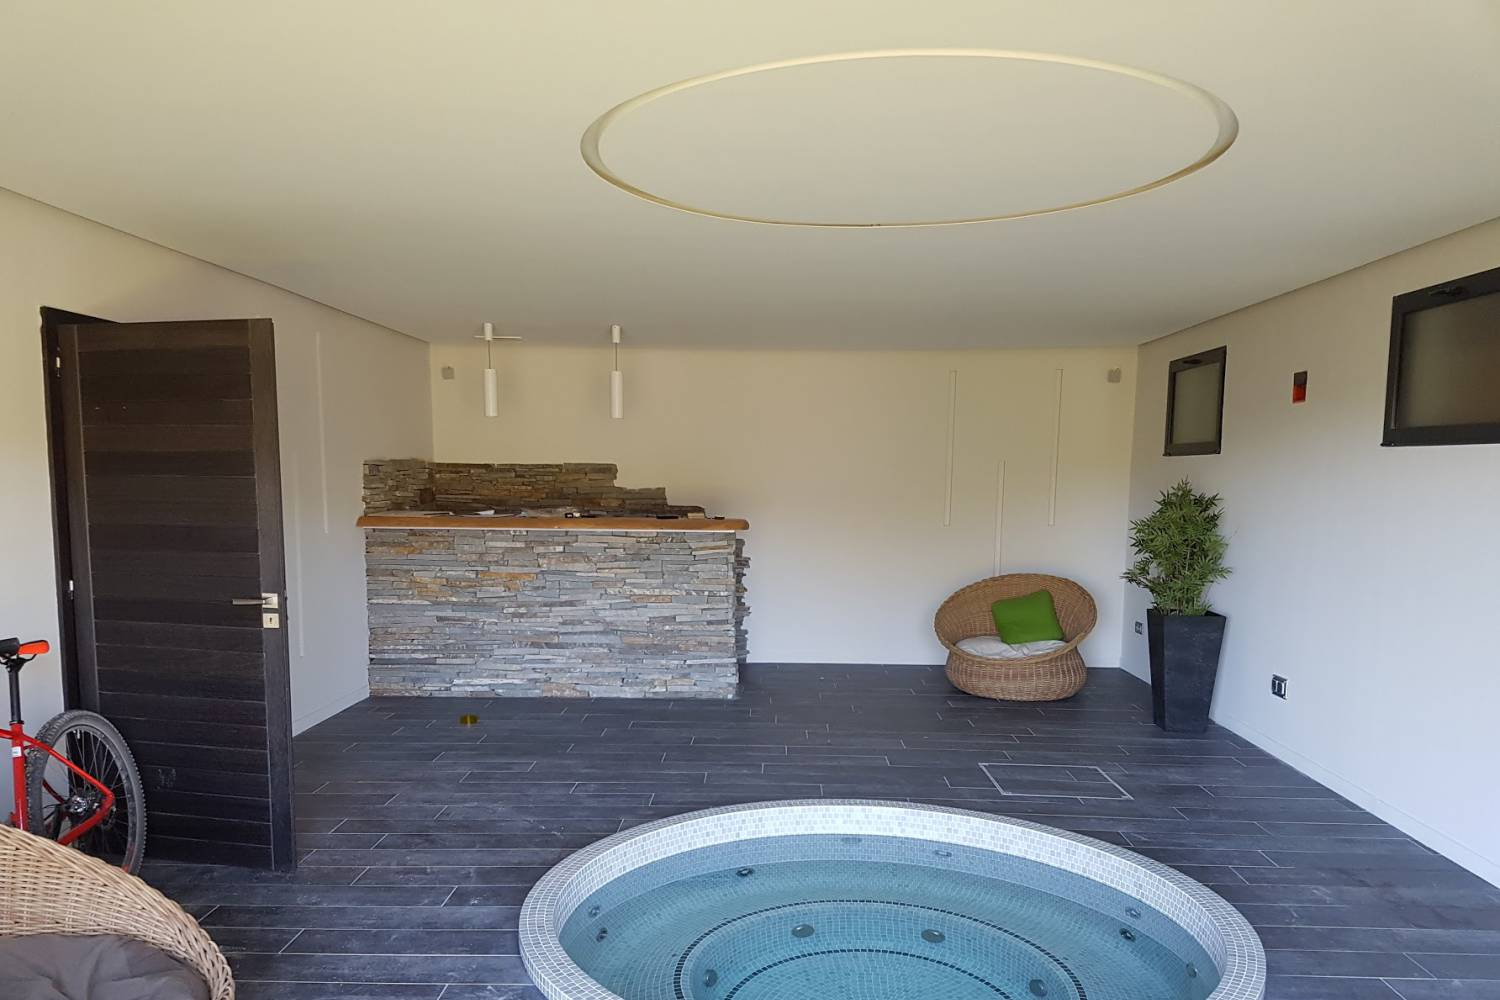 Design Interieur Concept Spa Interieur